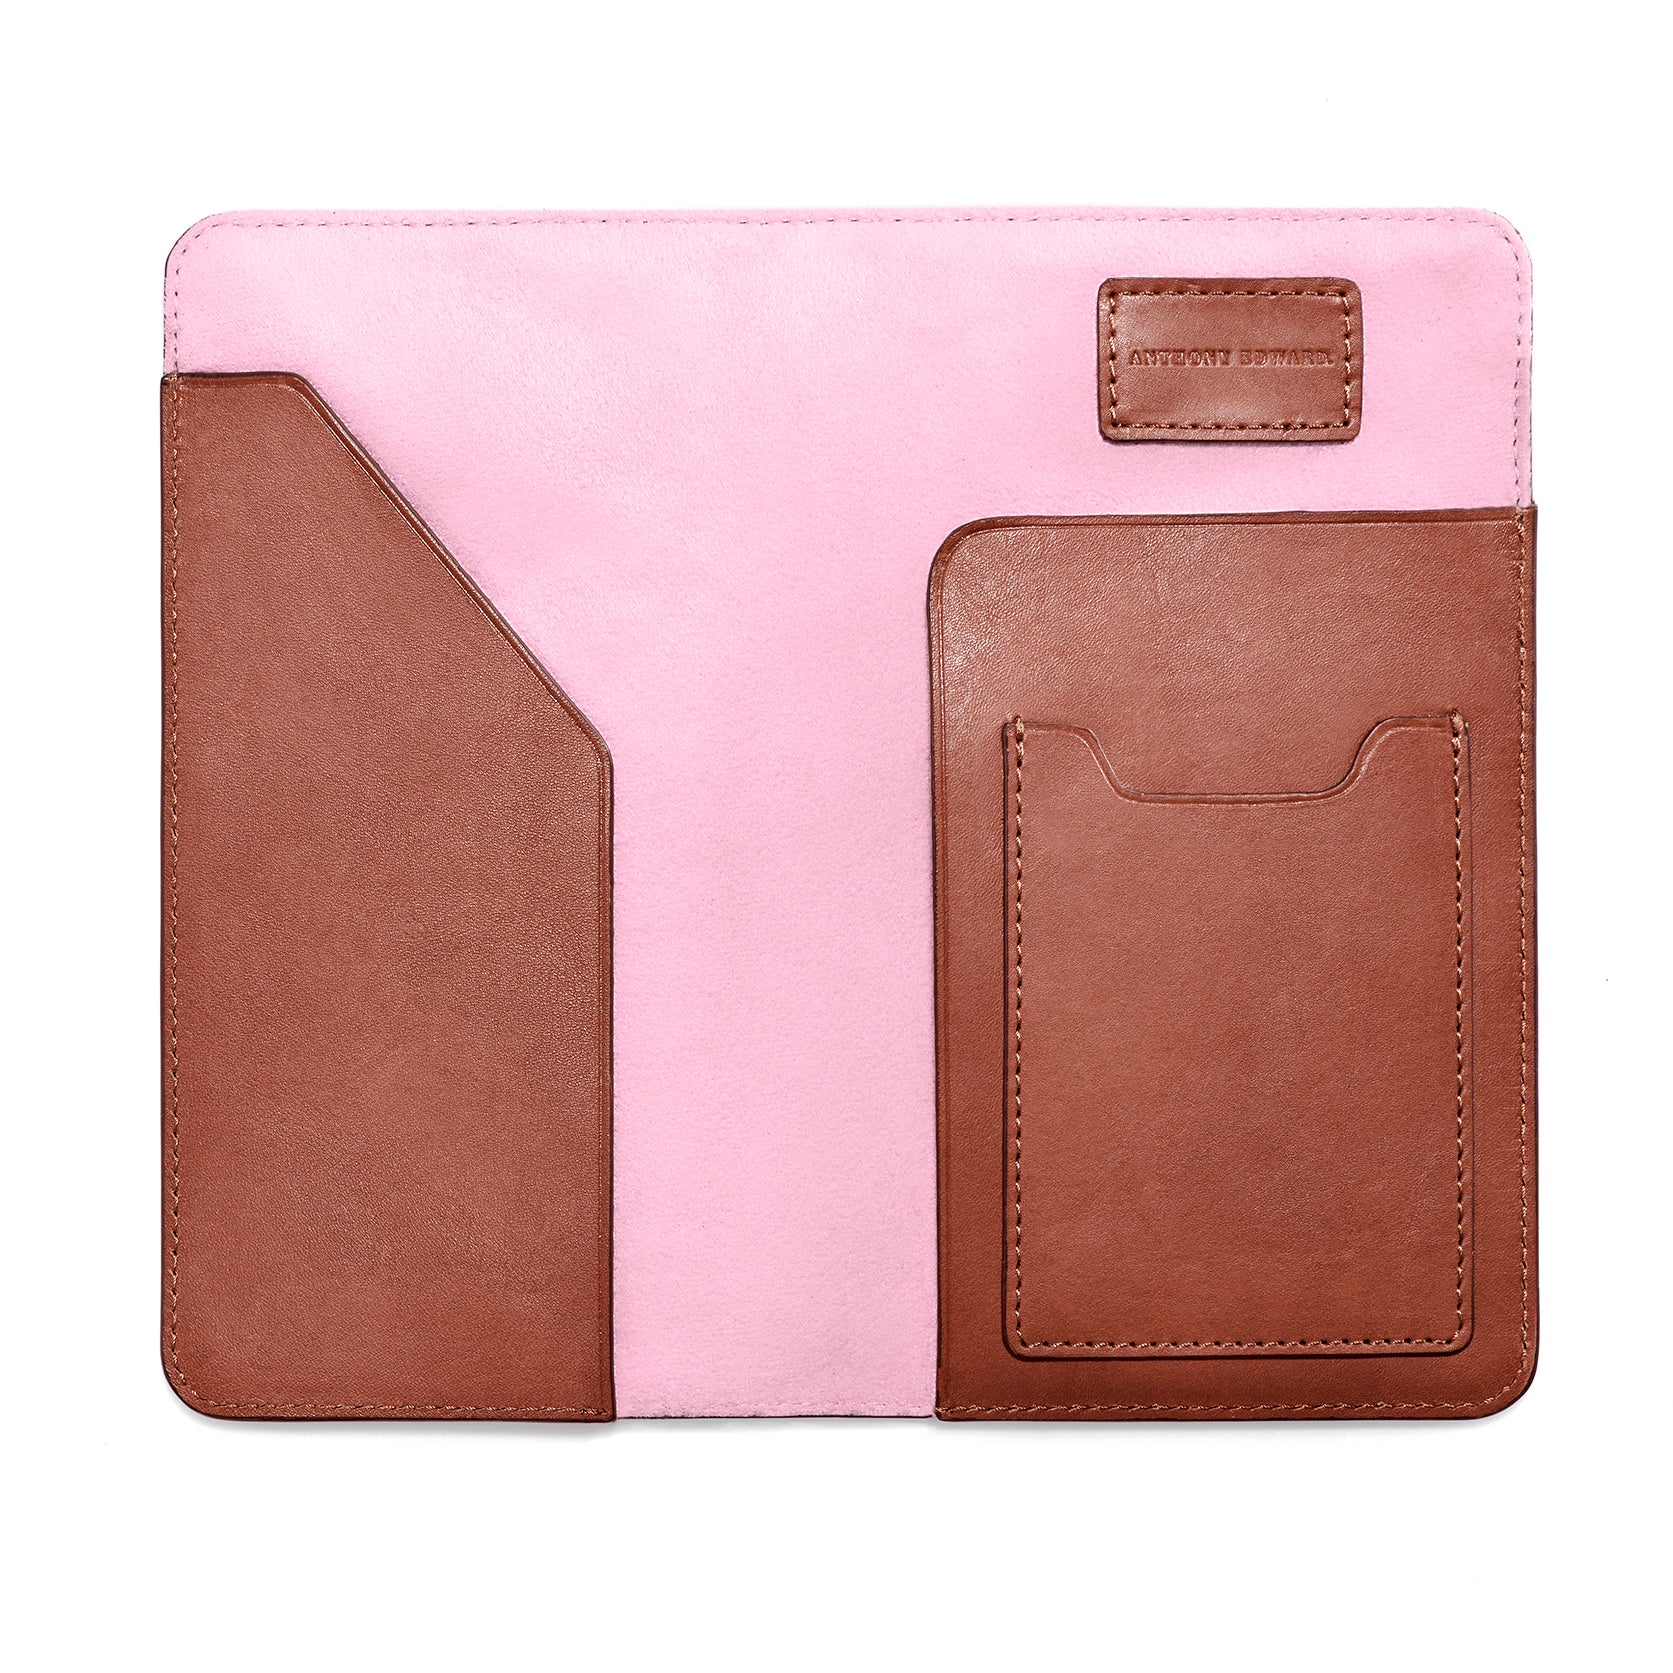 PASSPORT CASE COGNAC CORAL PINK (488099250225)